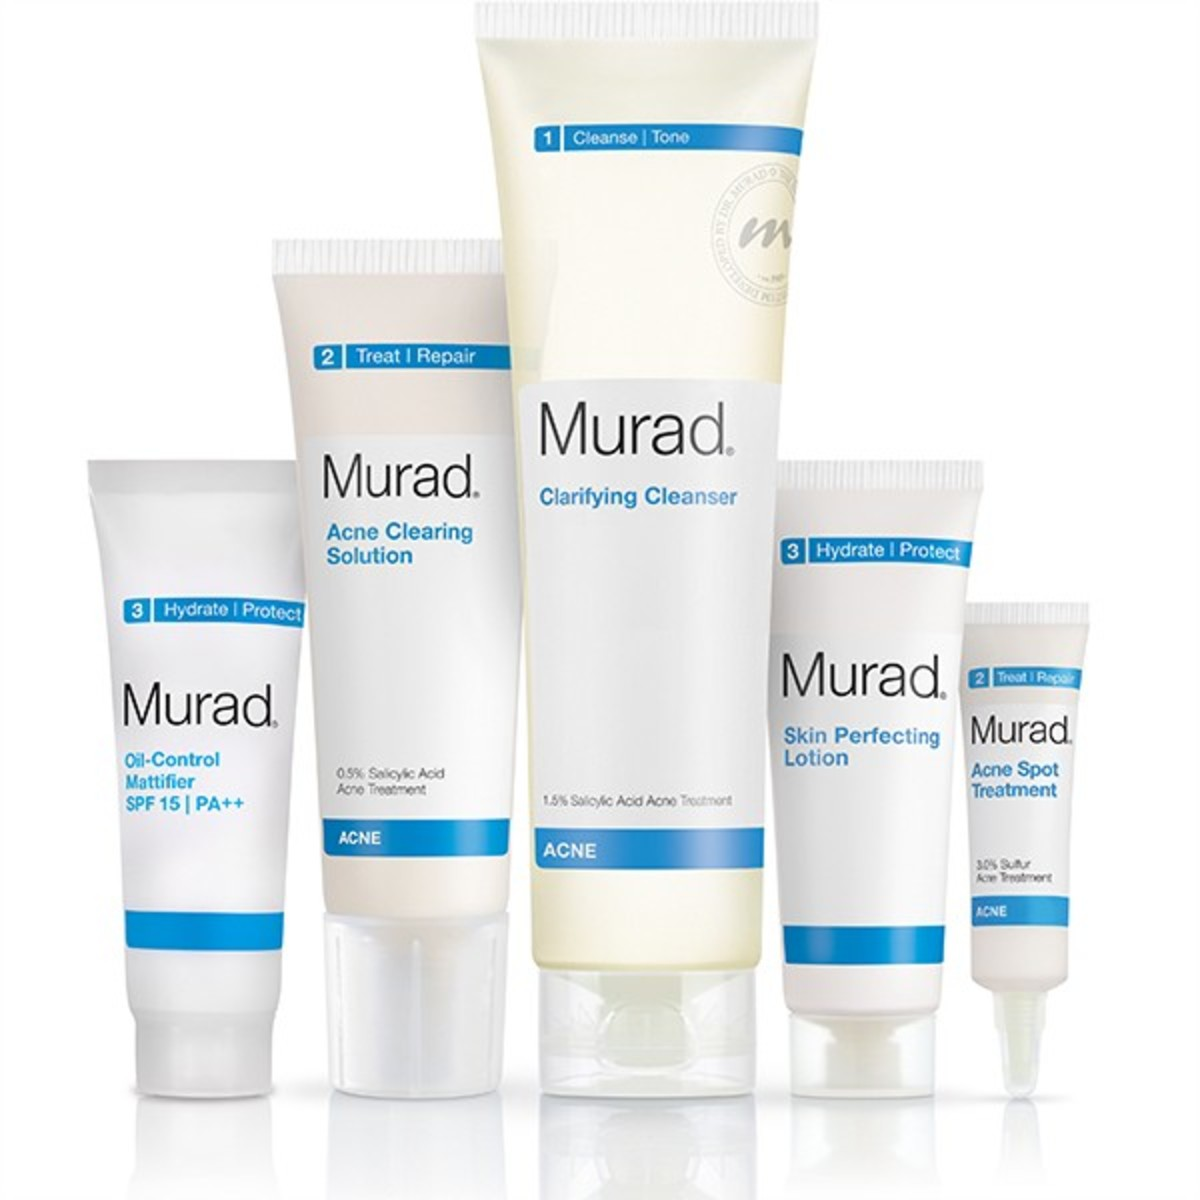 The Complete Acne Control kit comes with 5 pieces instead of 4.